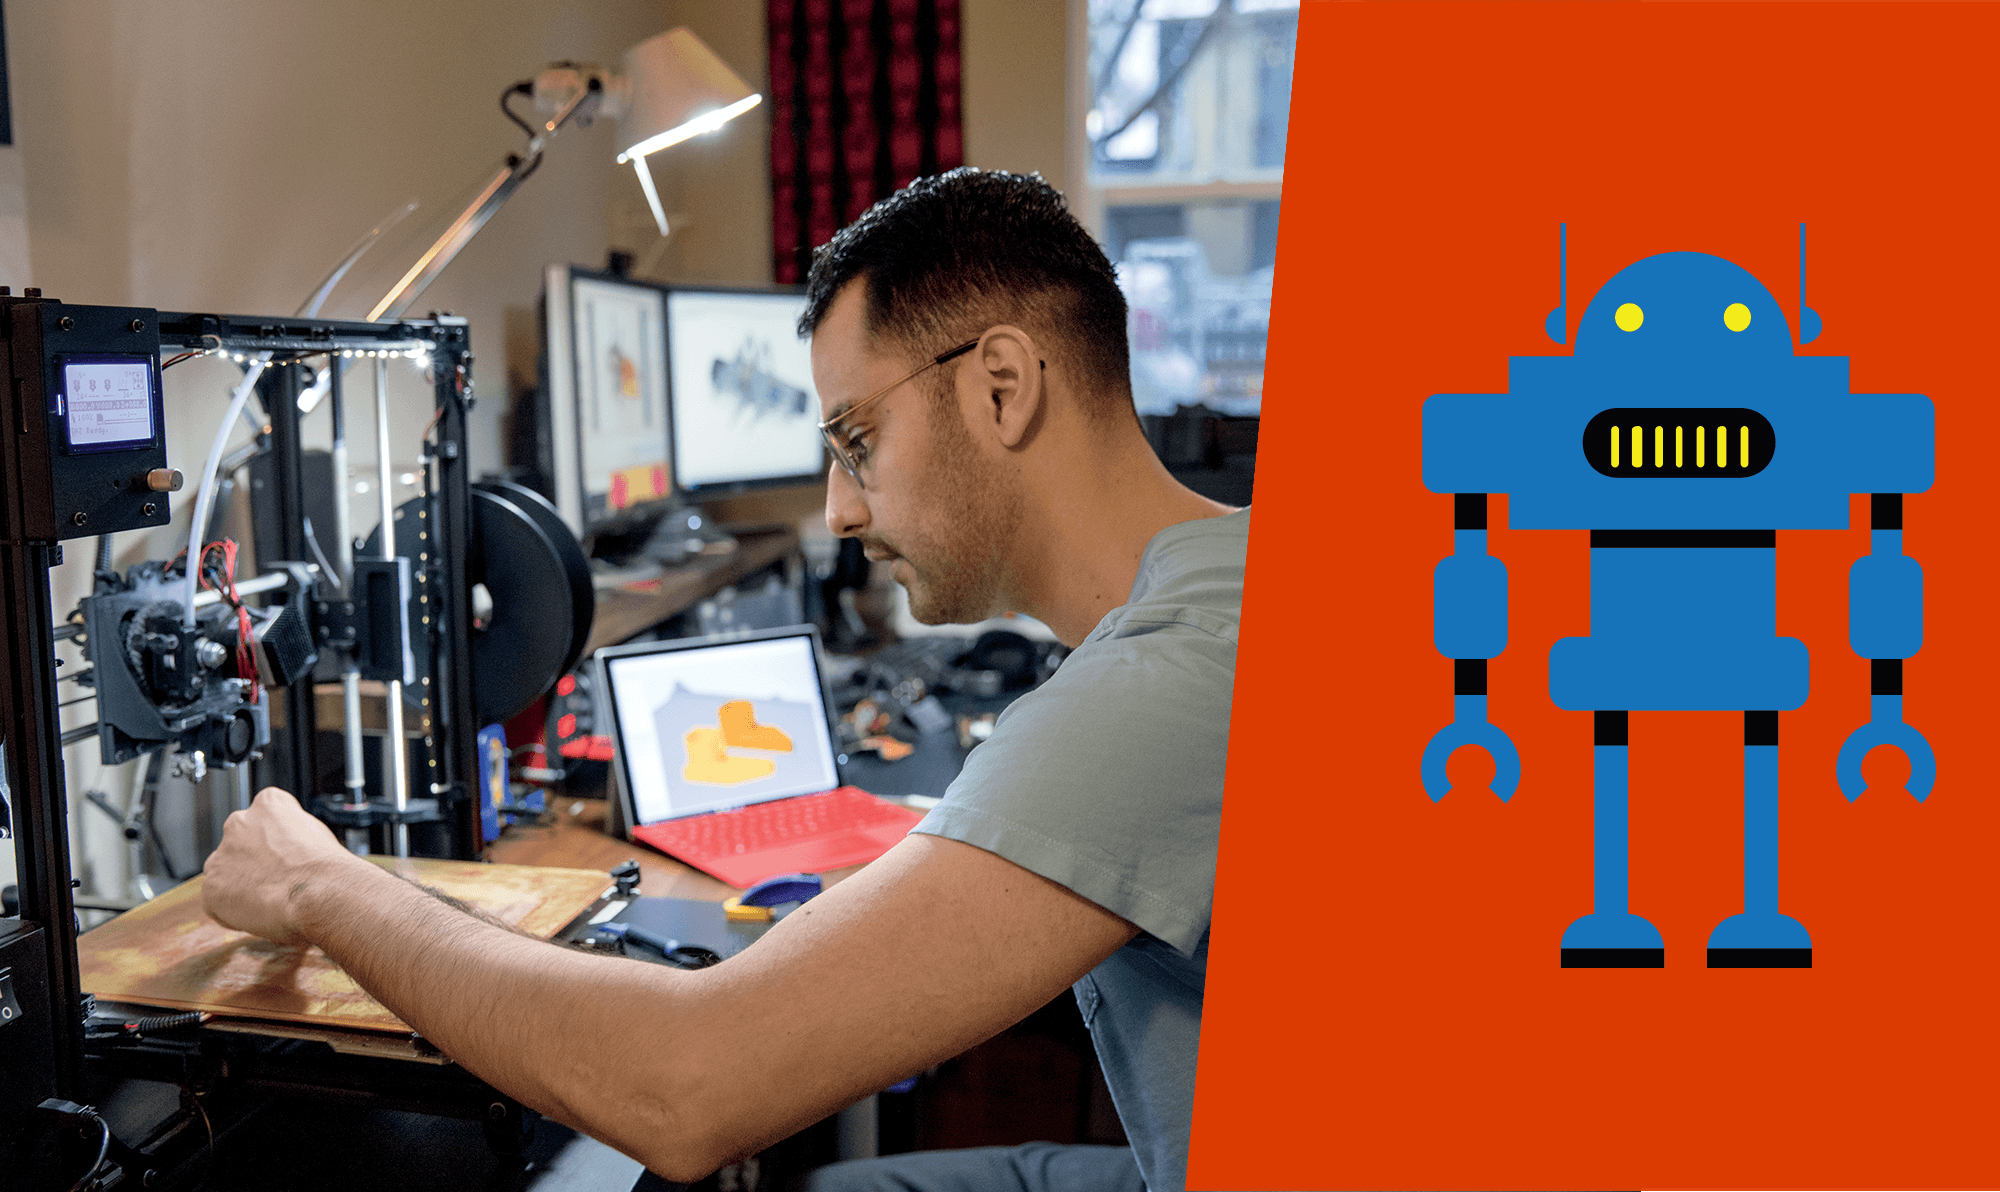 Microsoft Professional Program - Introduction to Artificial Intelligence